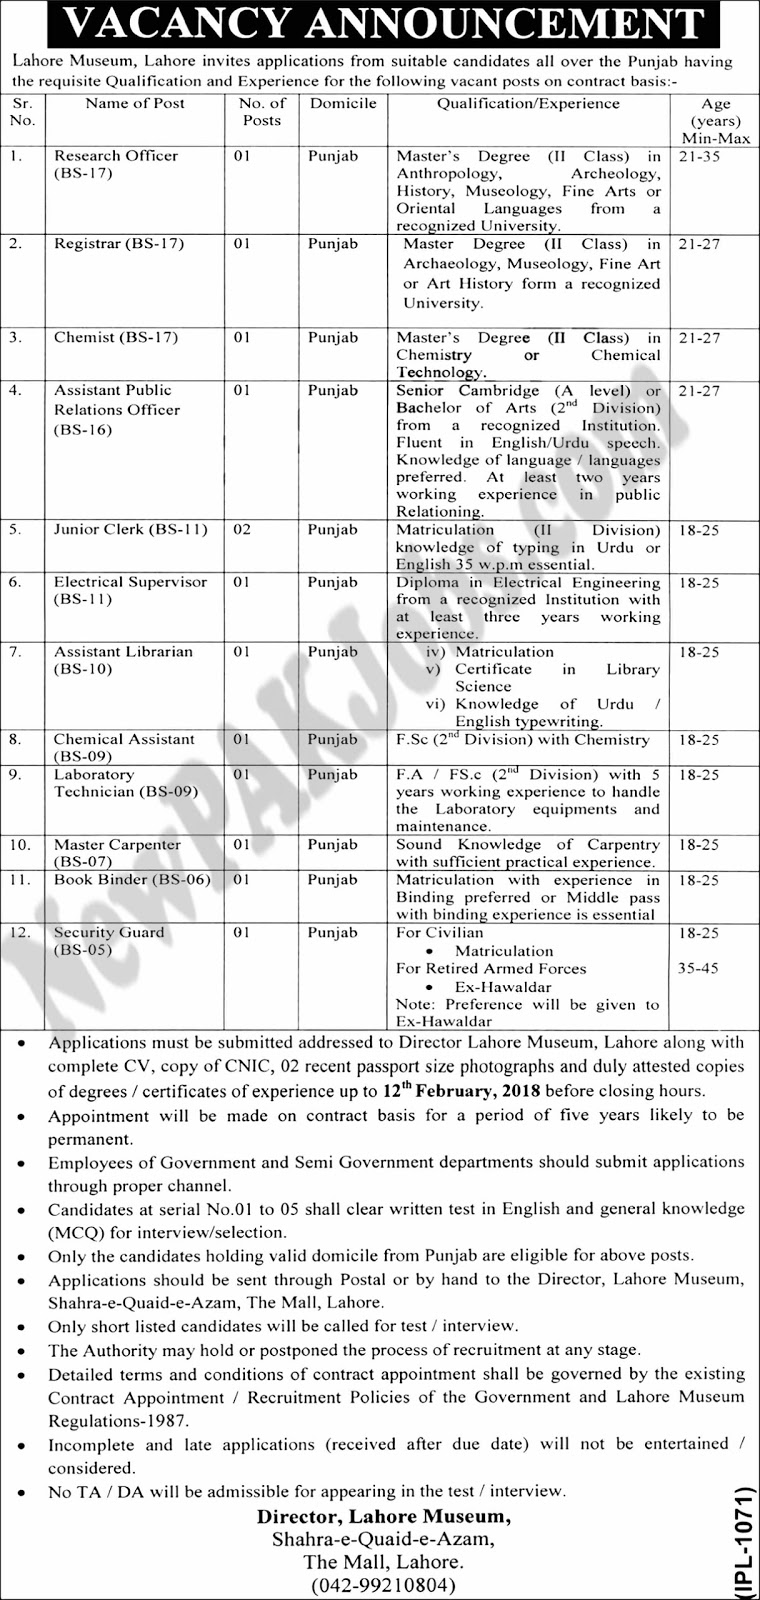 Latest New Jobs In Lahore Museum under Govenment of Punjab 2018